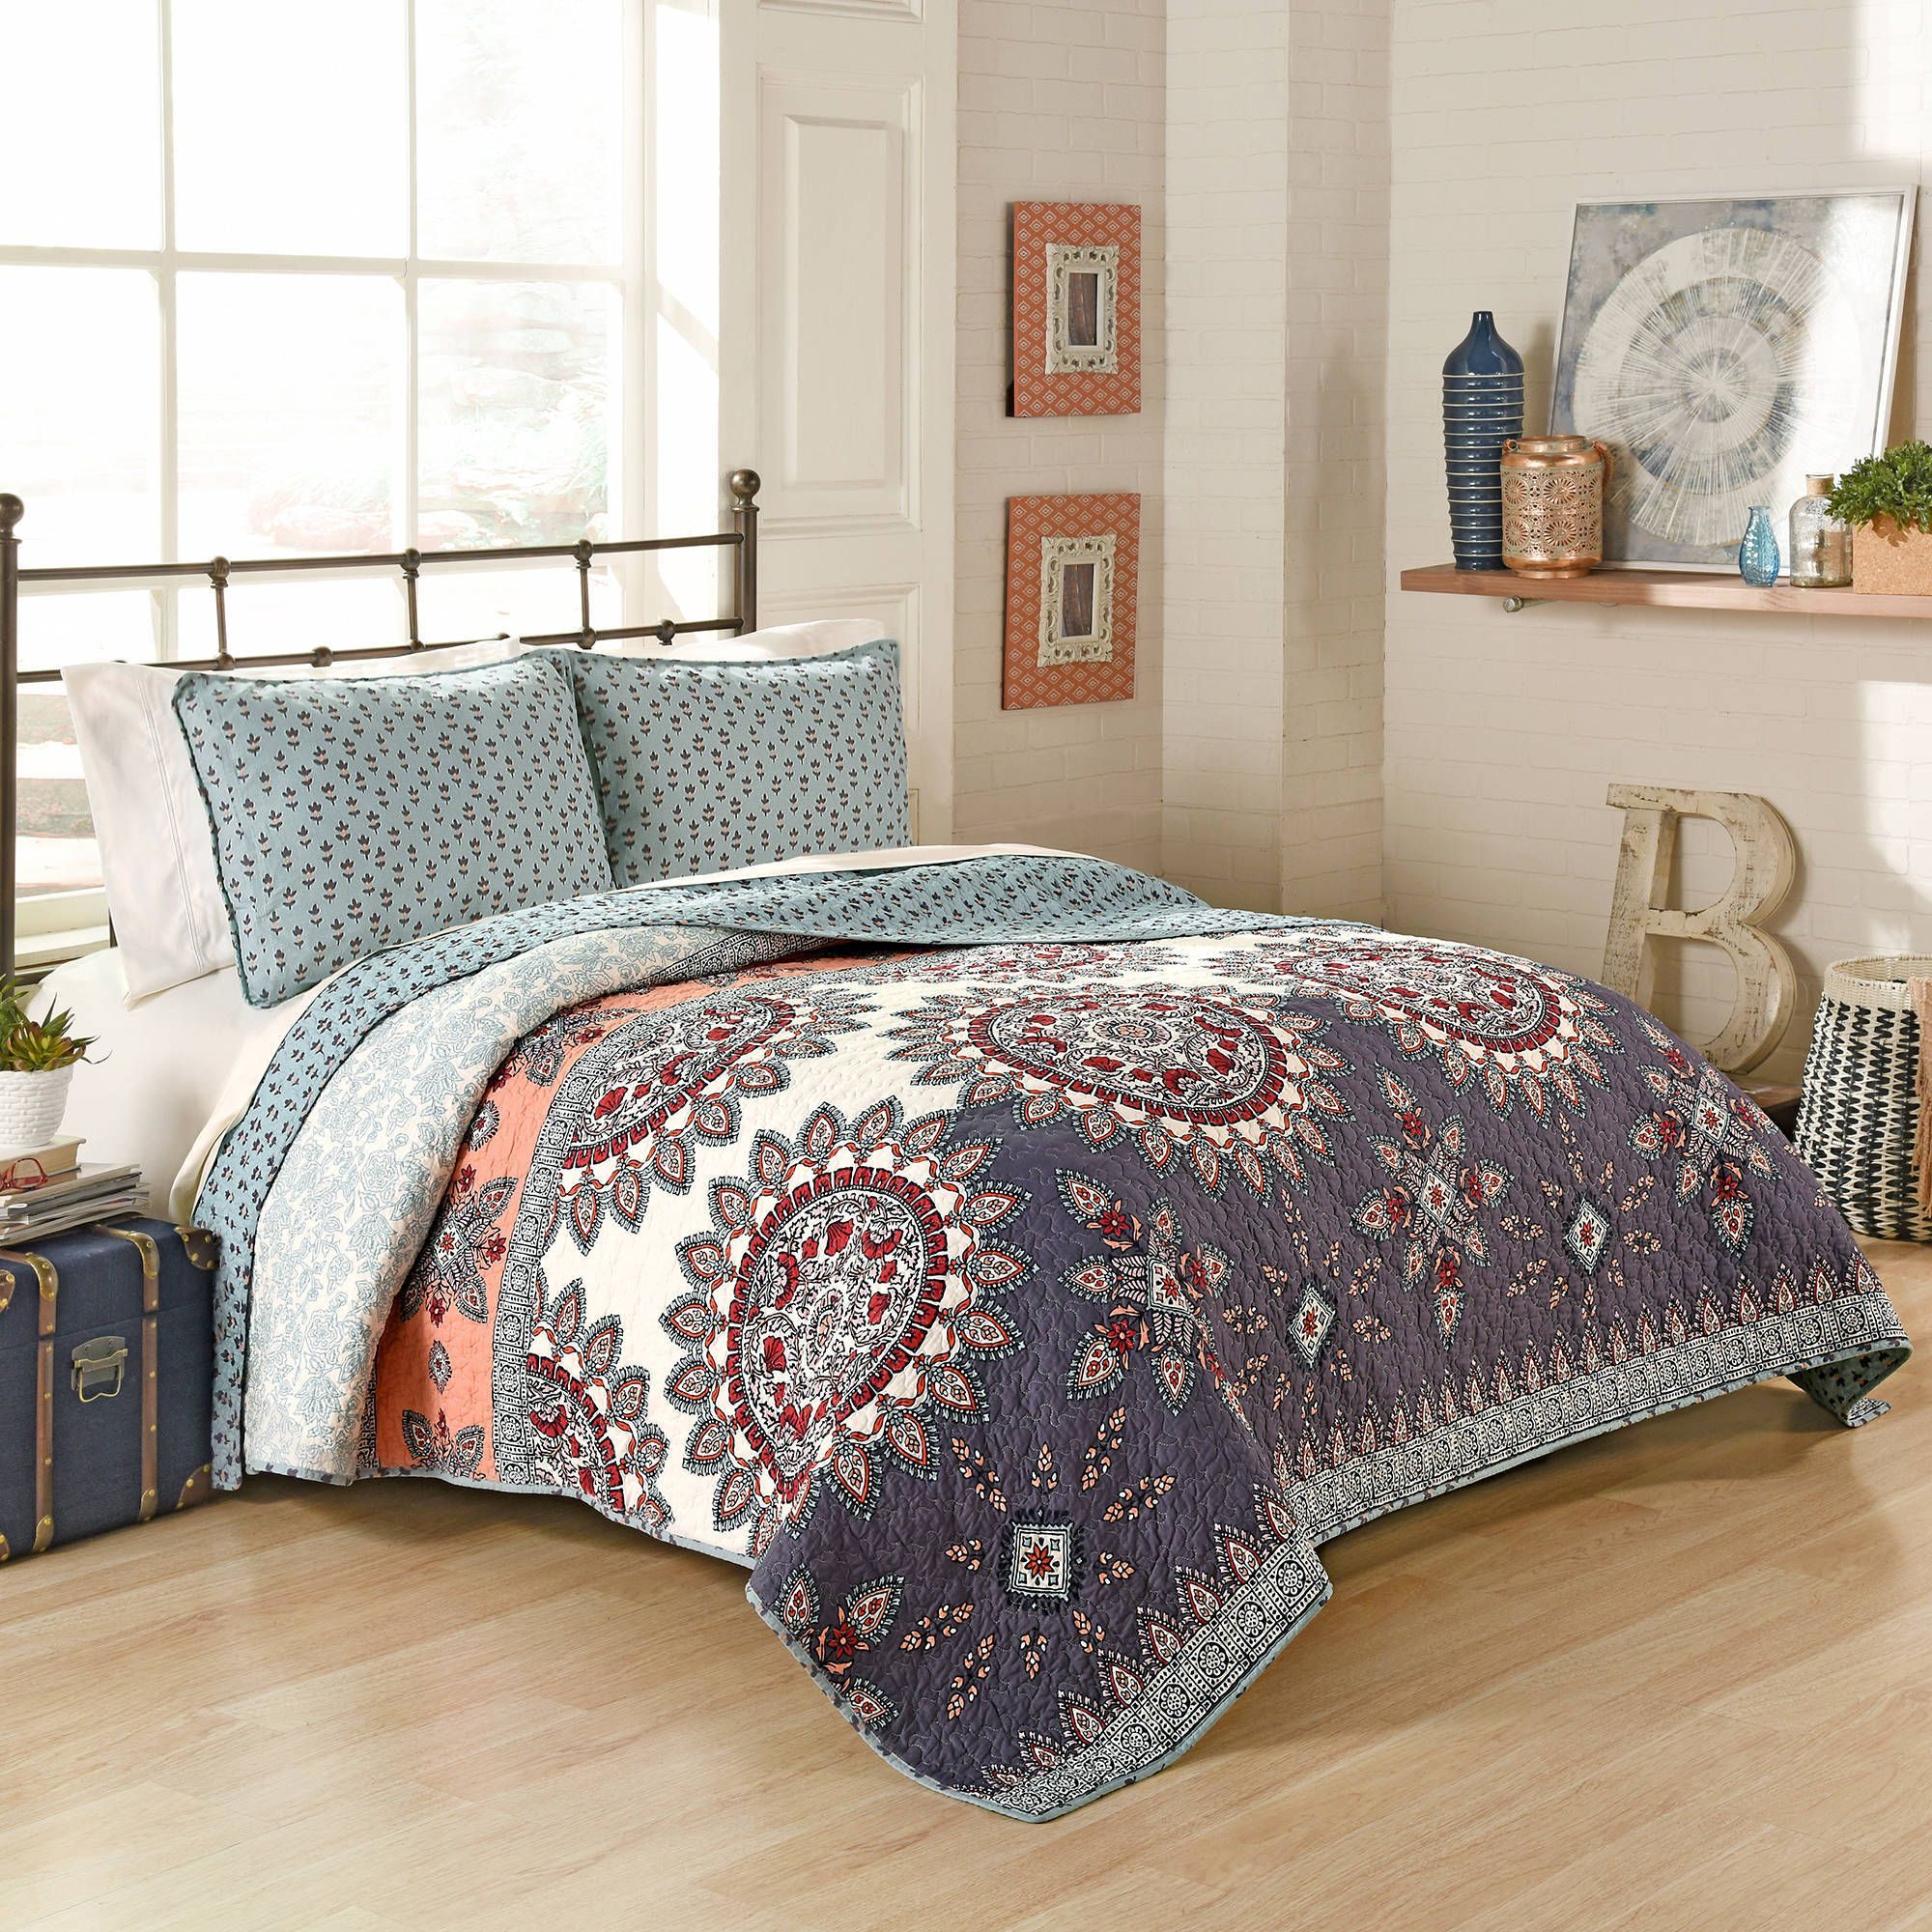 set piece duvet product free cover mi over bath on shipping moroccan zone bedding orders asha